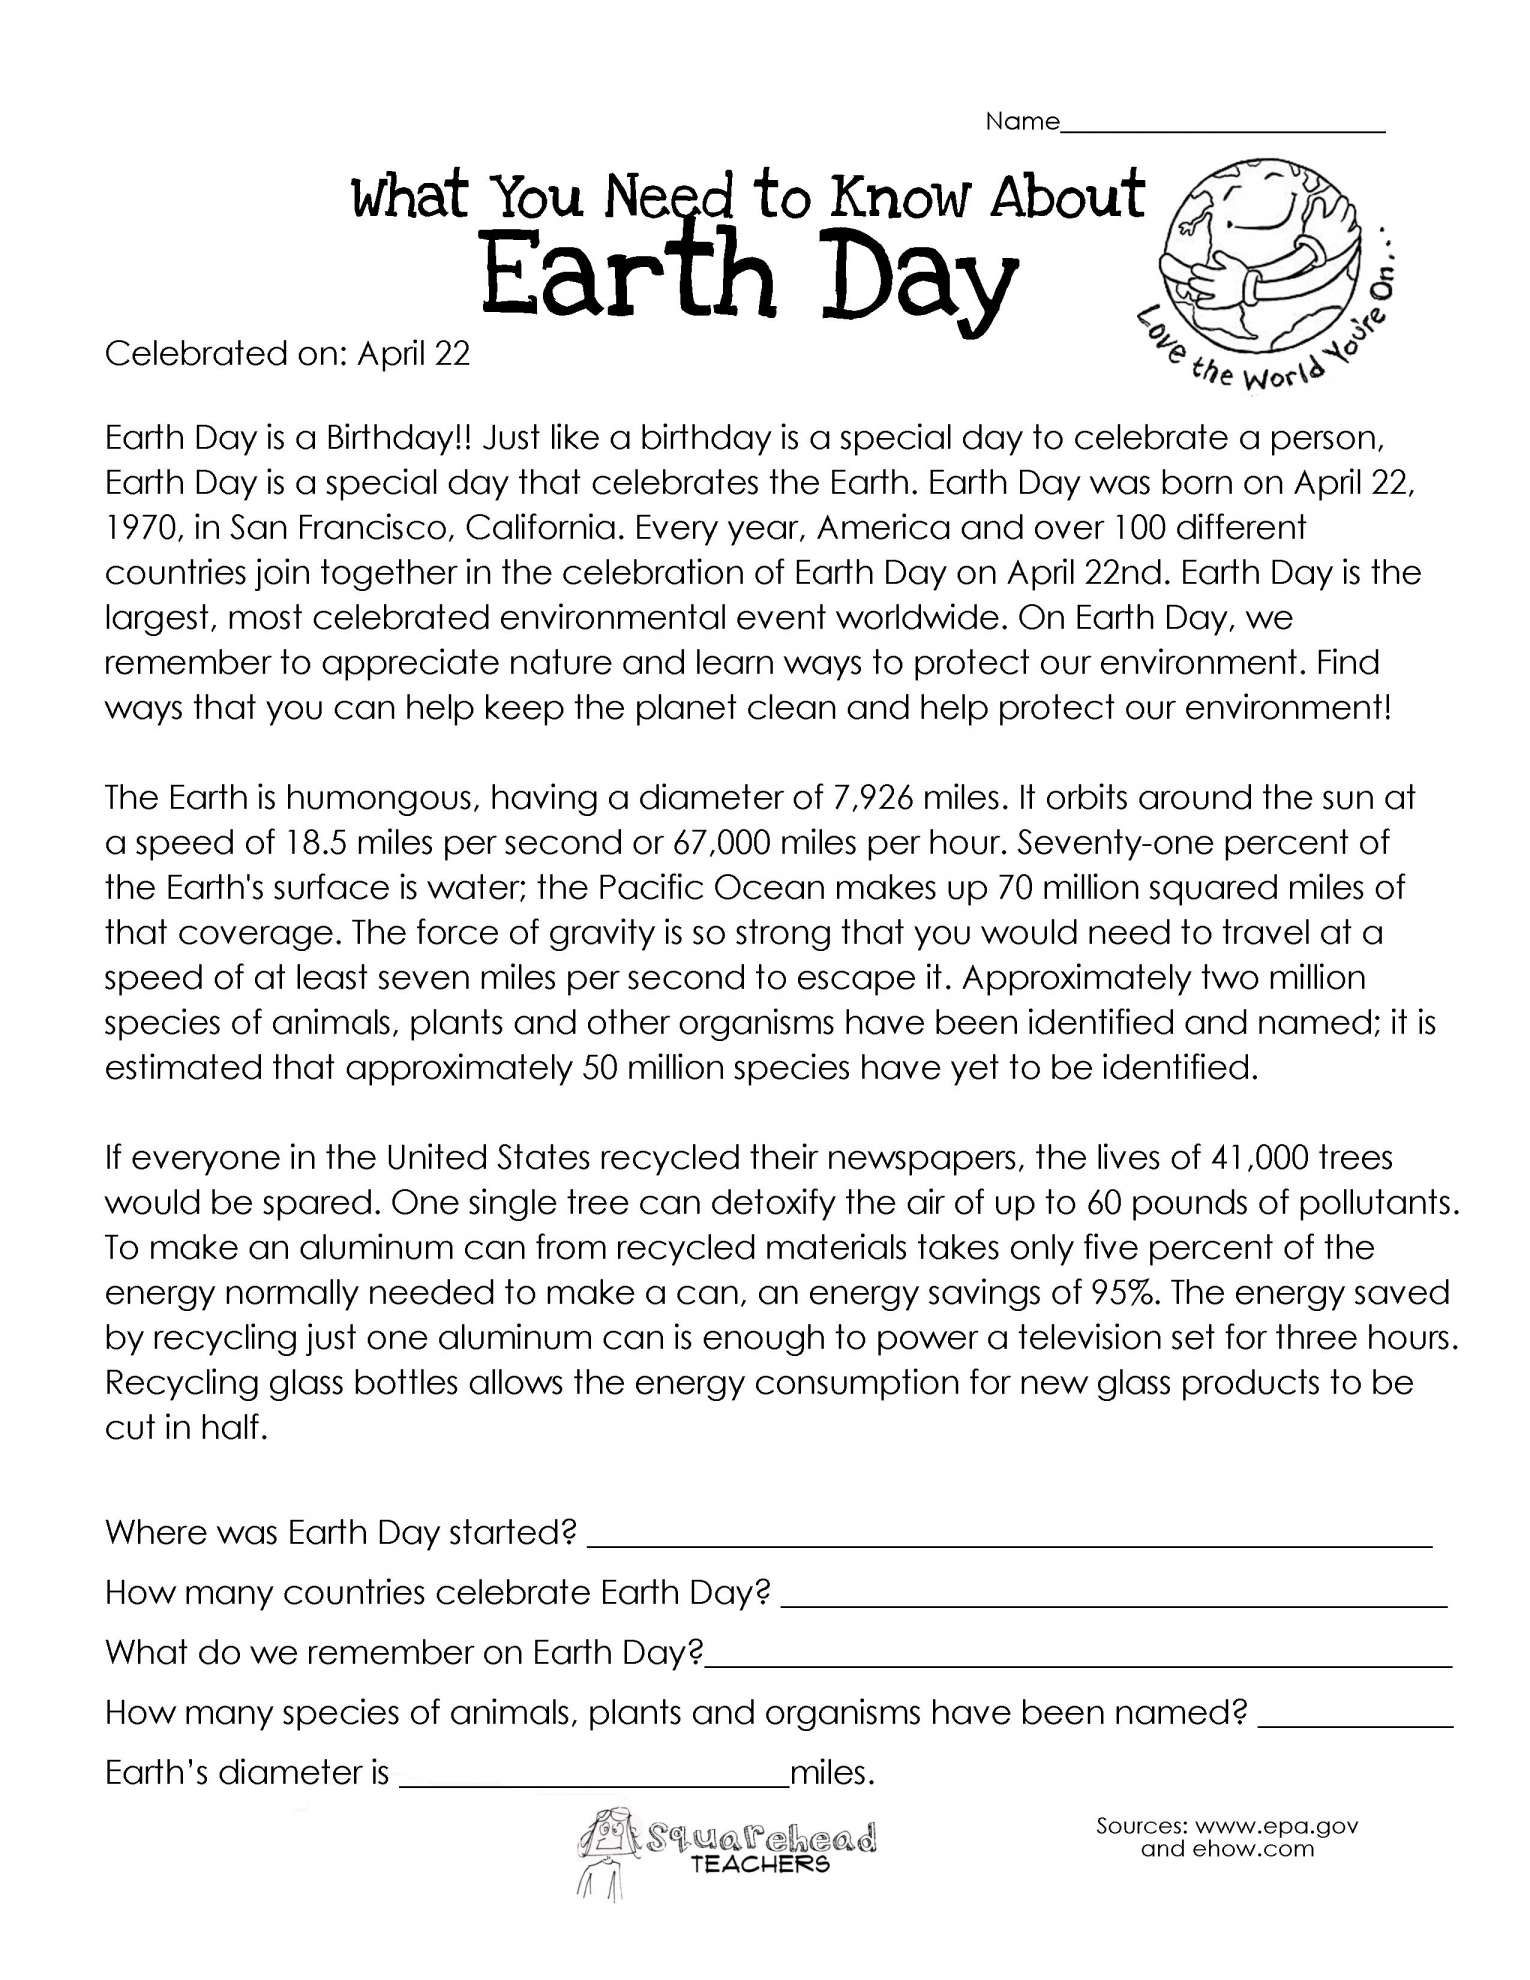 15 Earth Day Worksheets 4th Grade In